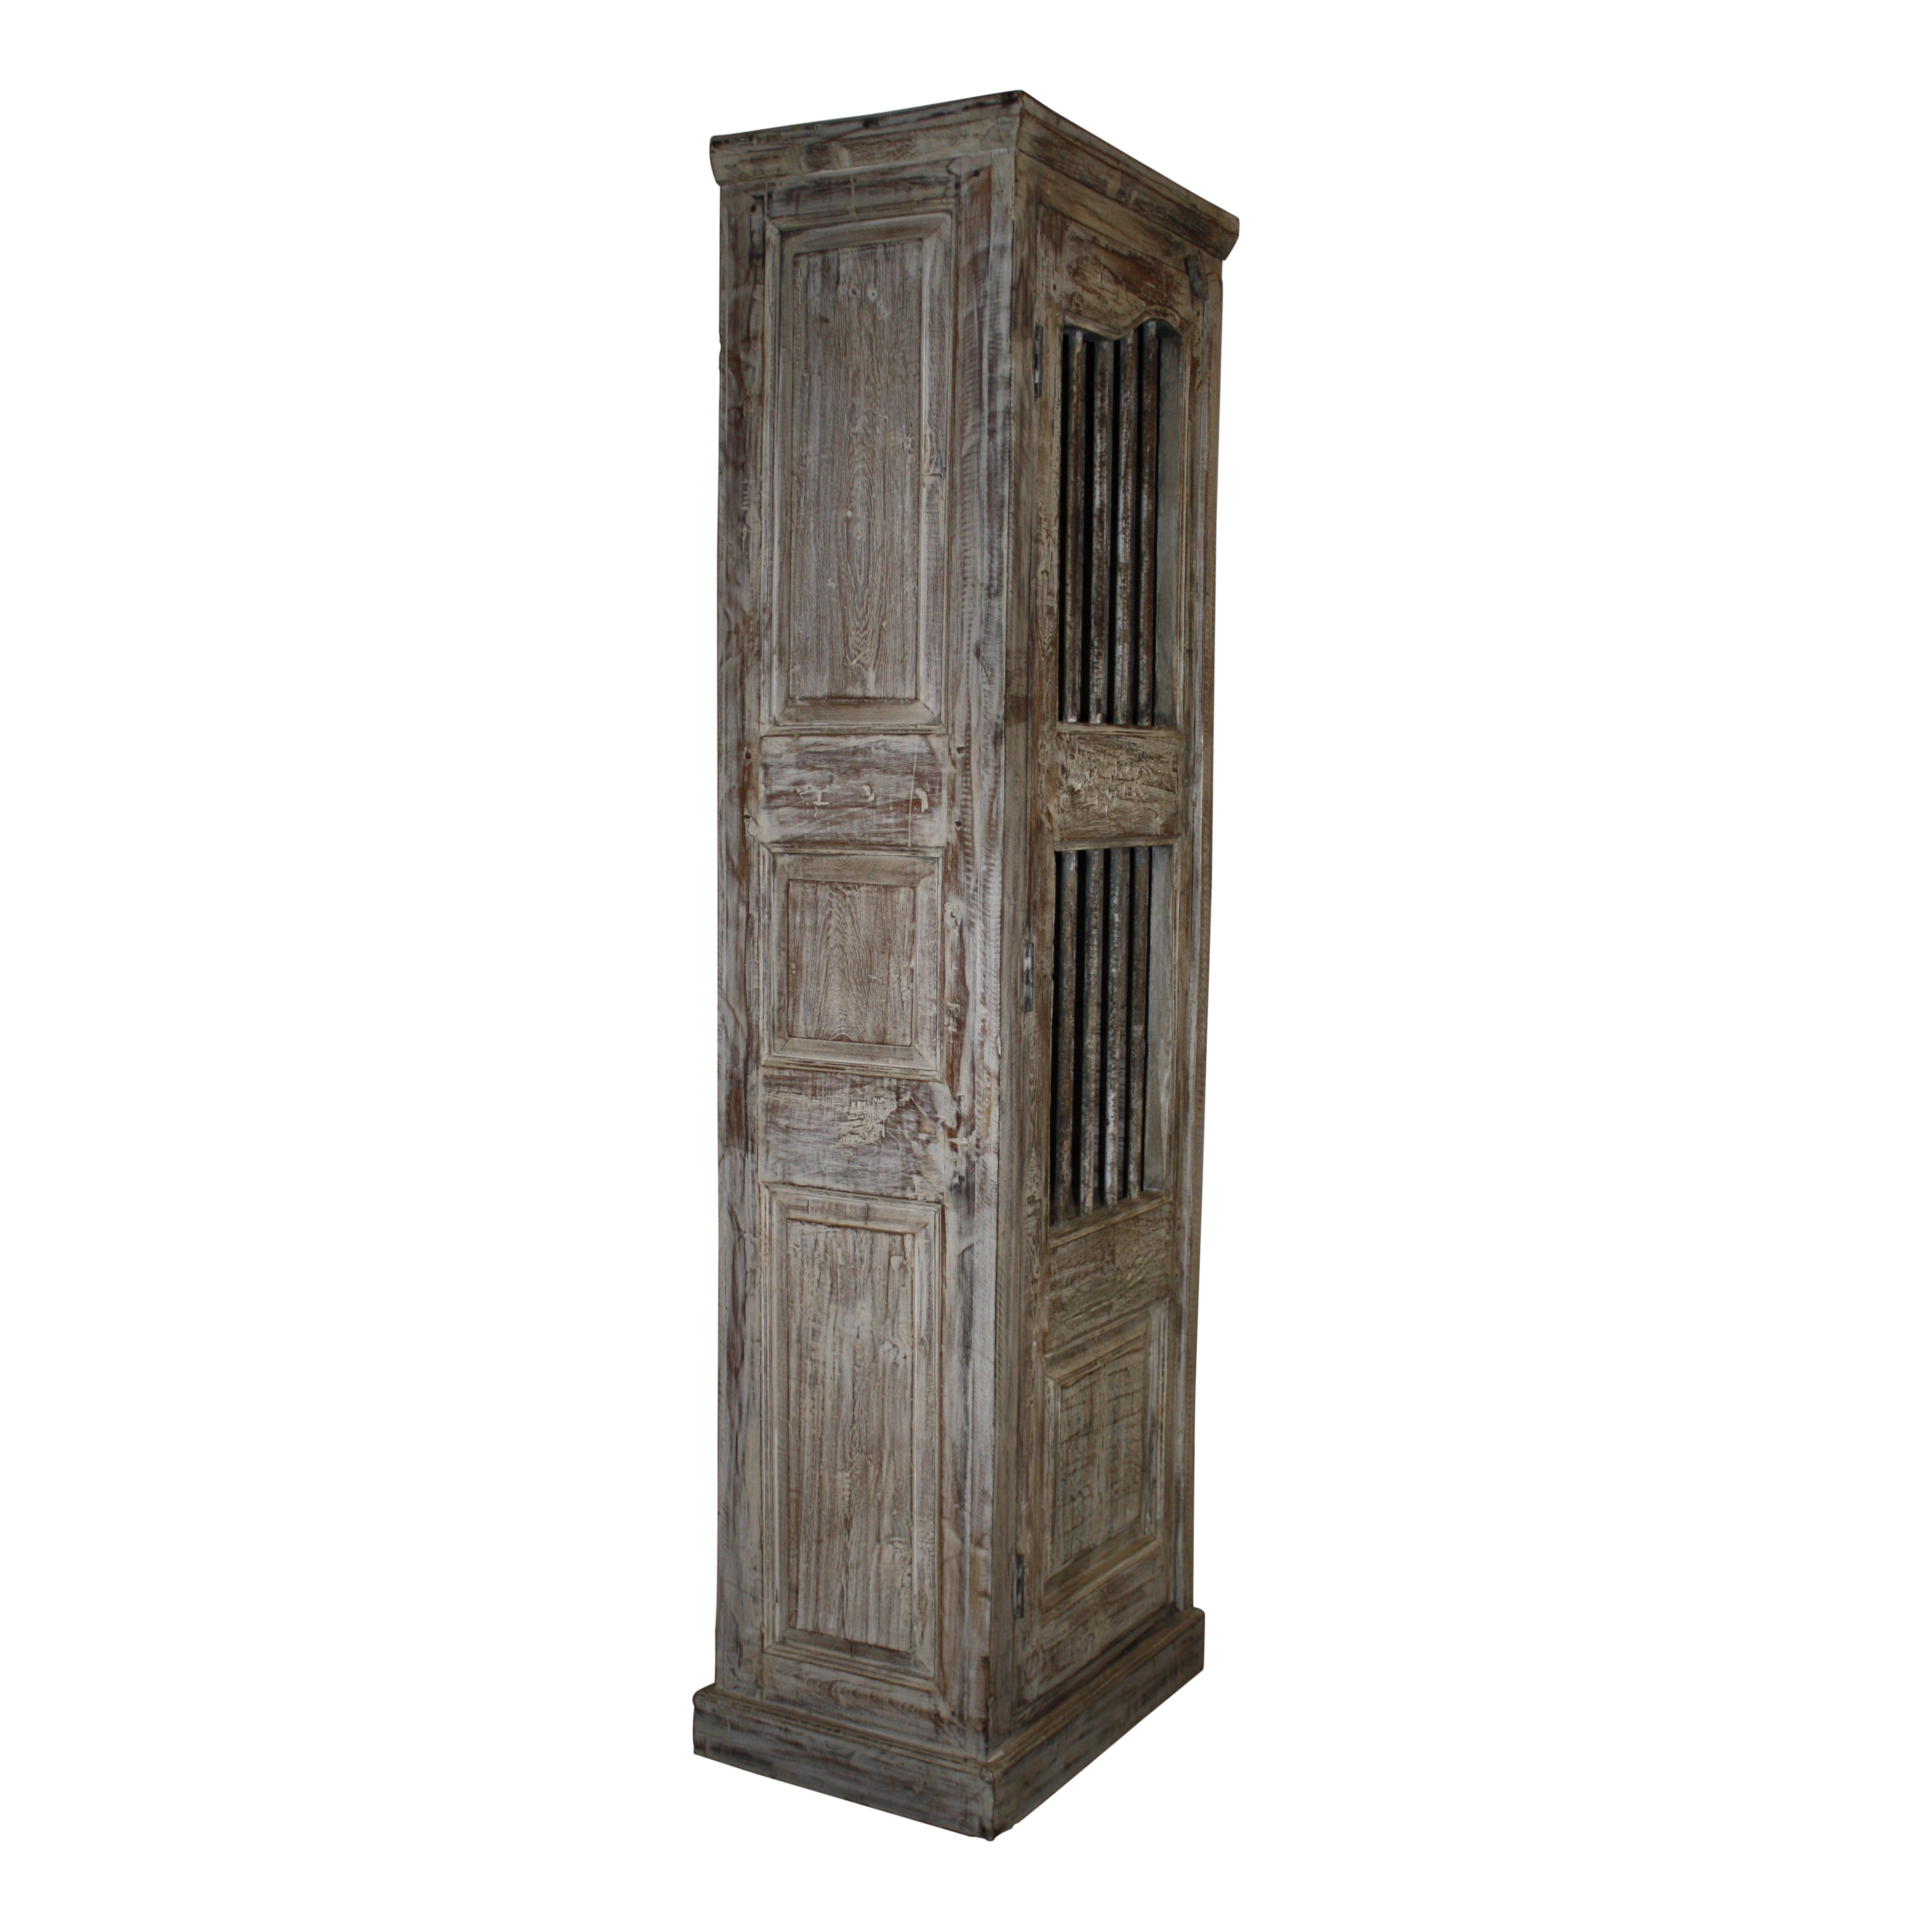 Narrow One Door Cabinet with Bars